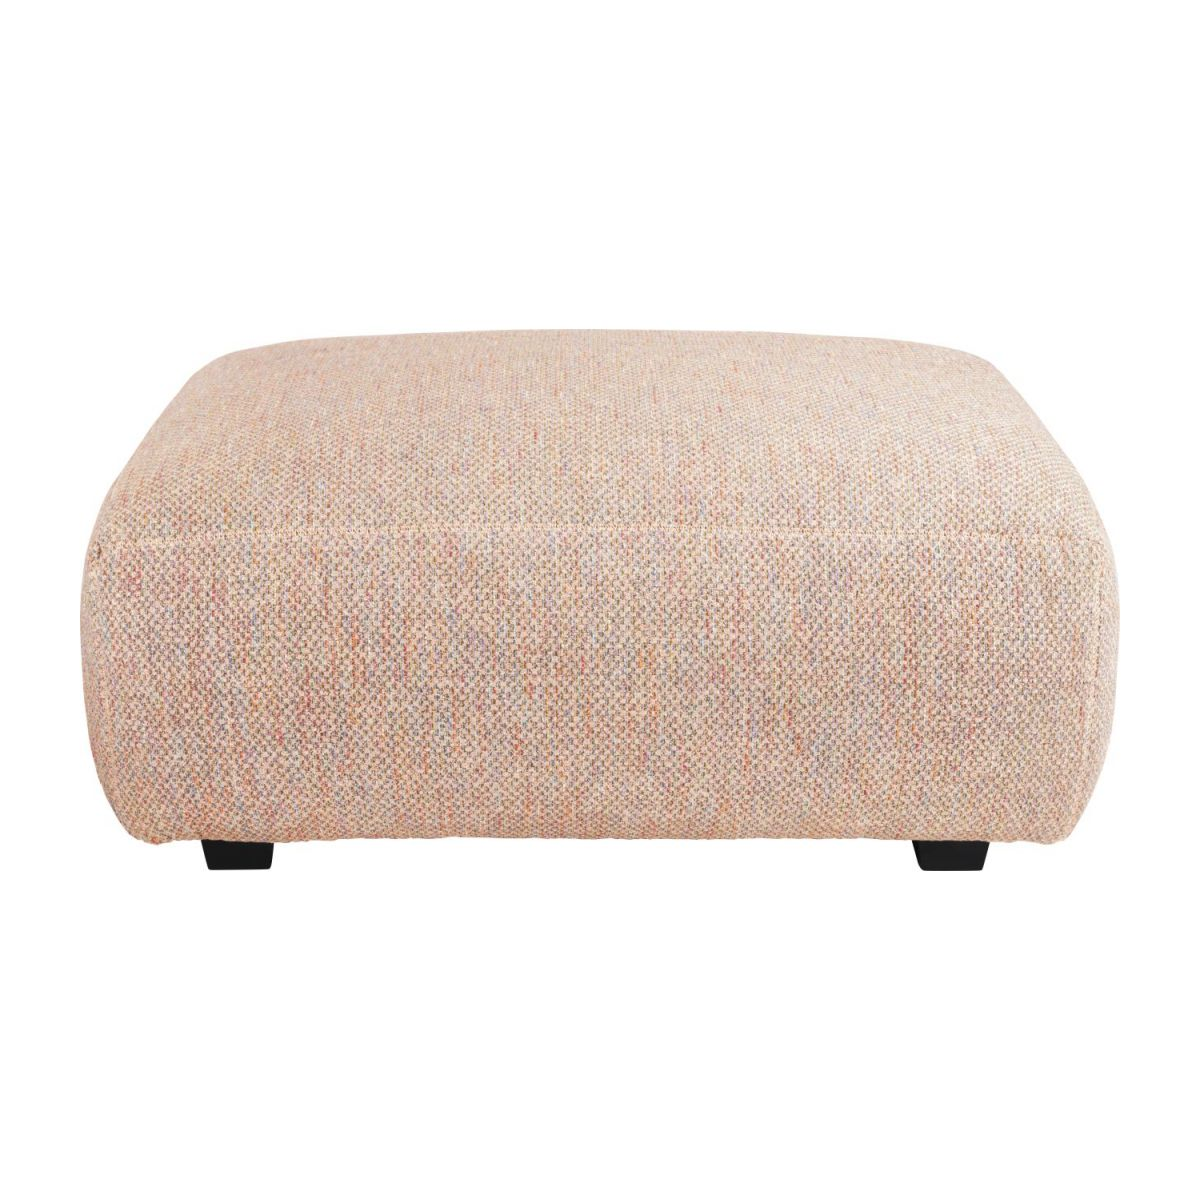 Footstool in Bellagio fabric, passion orange n°2